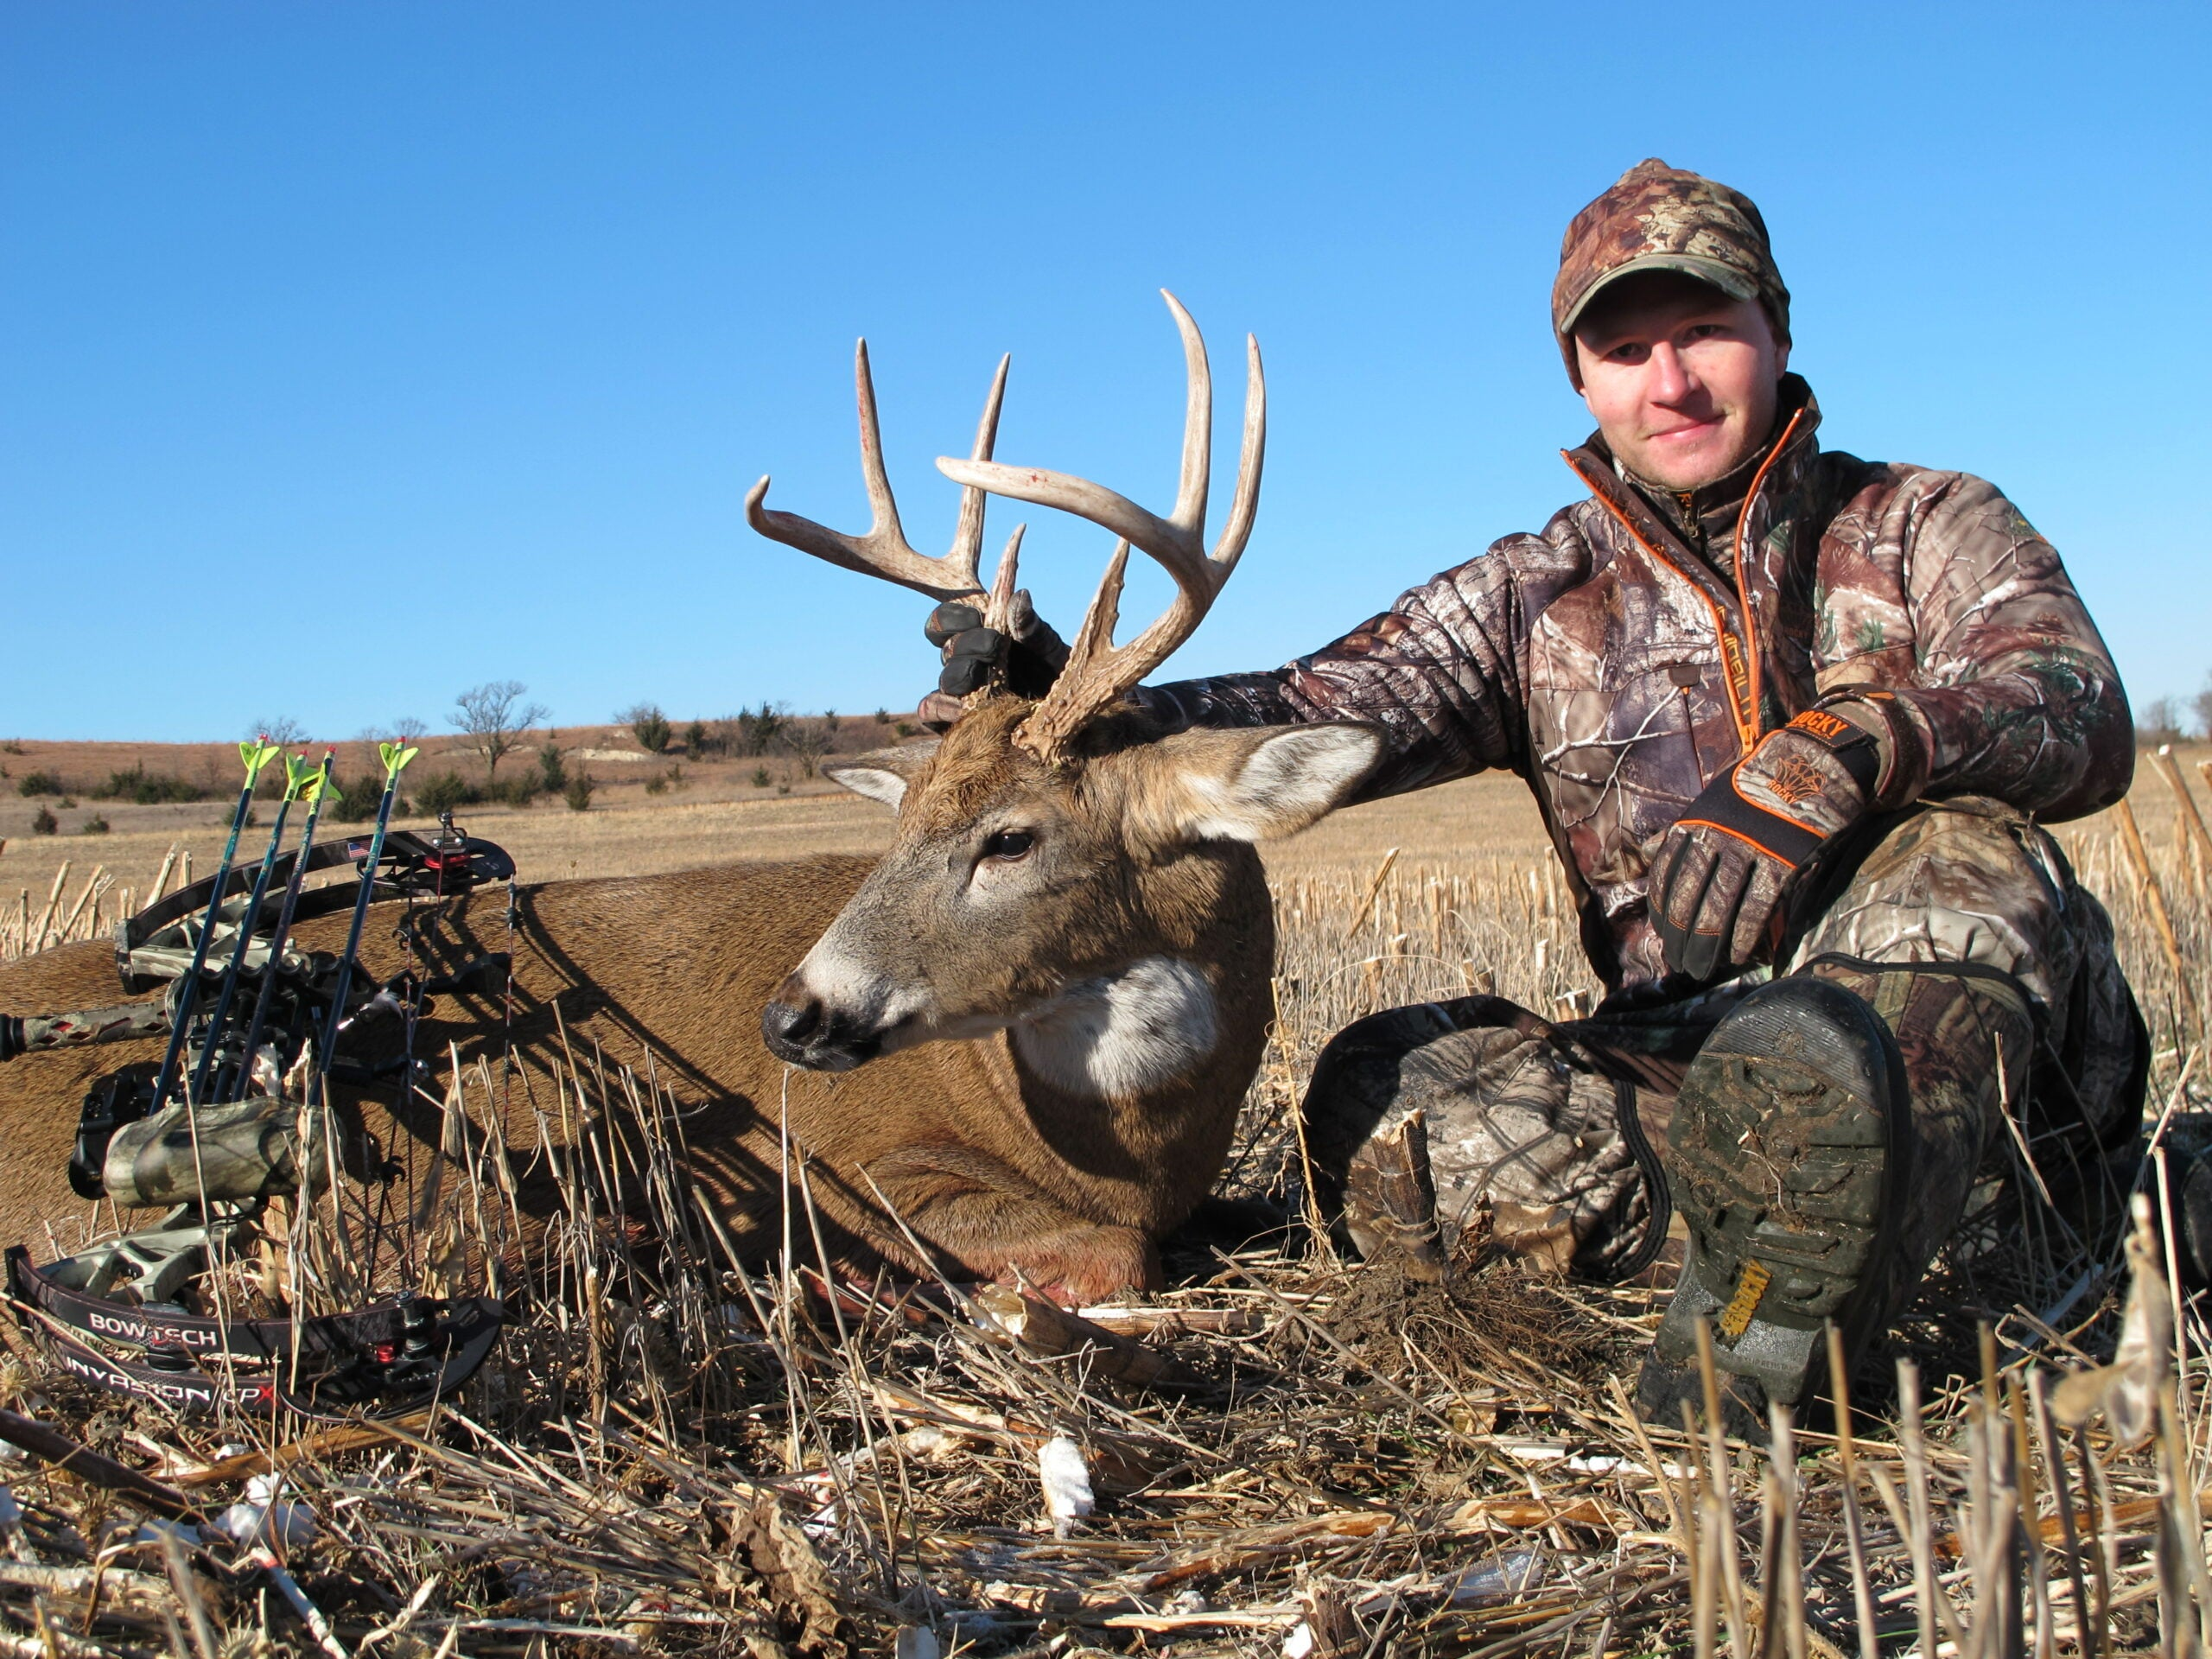 Deer Hunting: 3 Treestand Tricks for More Bowhunting Success